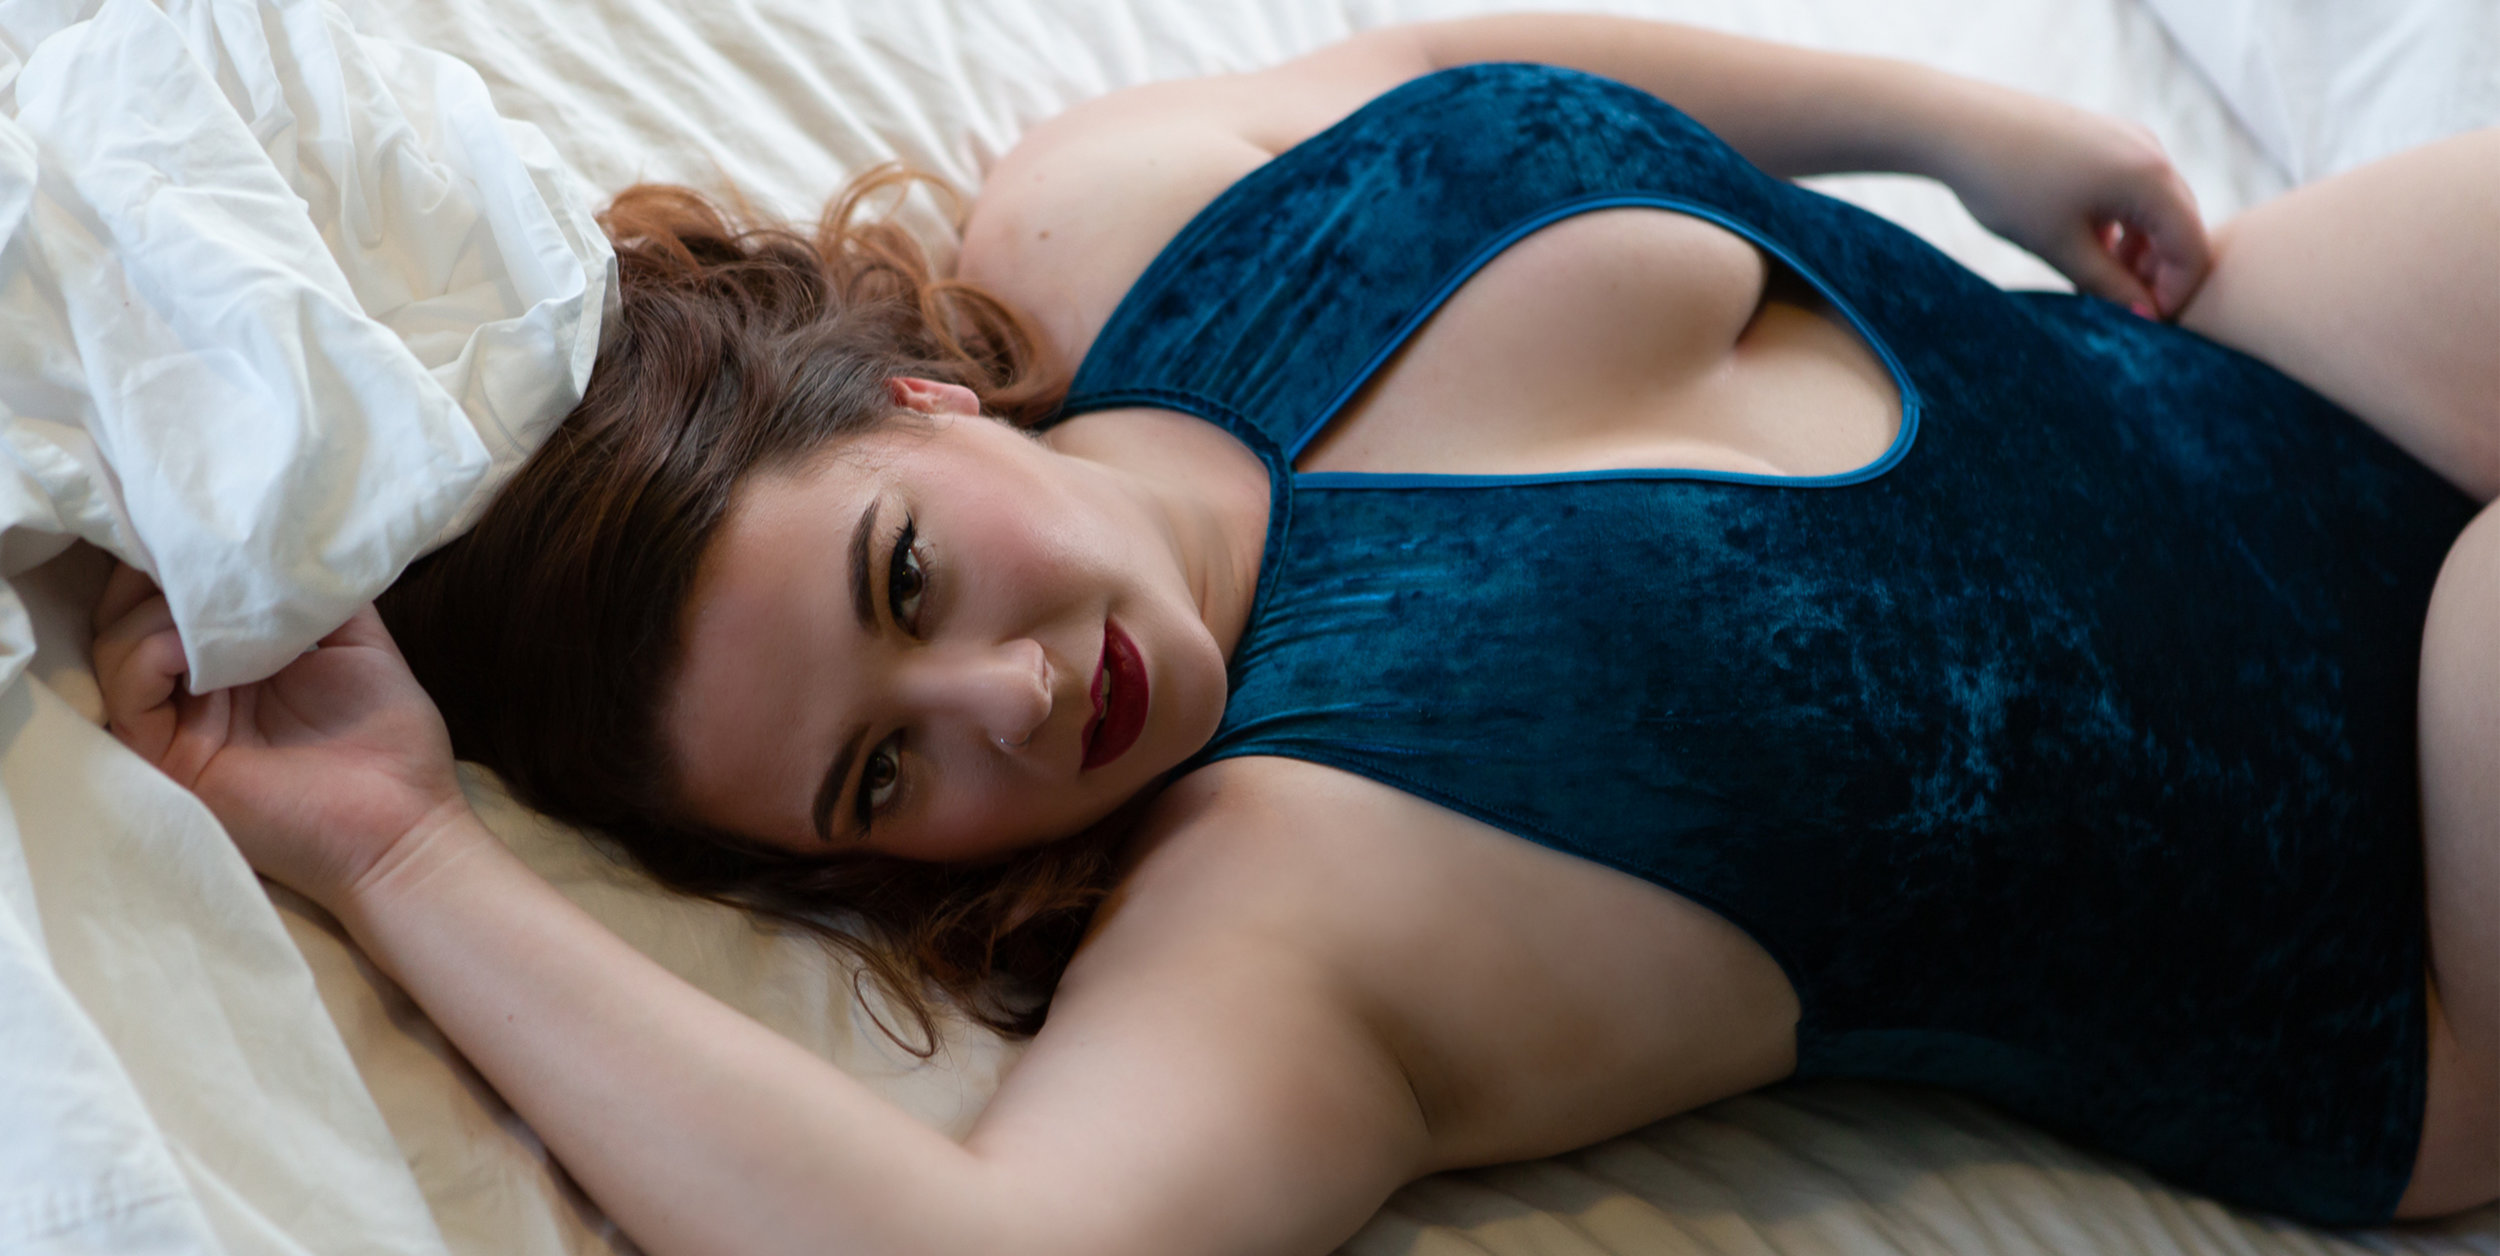 Helena Montana Boudoir by Misty Boles Intimate Photography.Curvy Woman in blue lingerie grabbing the sheets. Boudoir photo by Misty Boles Intimate Photography